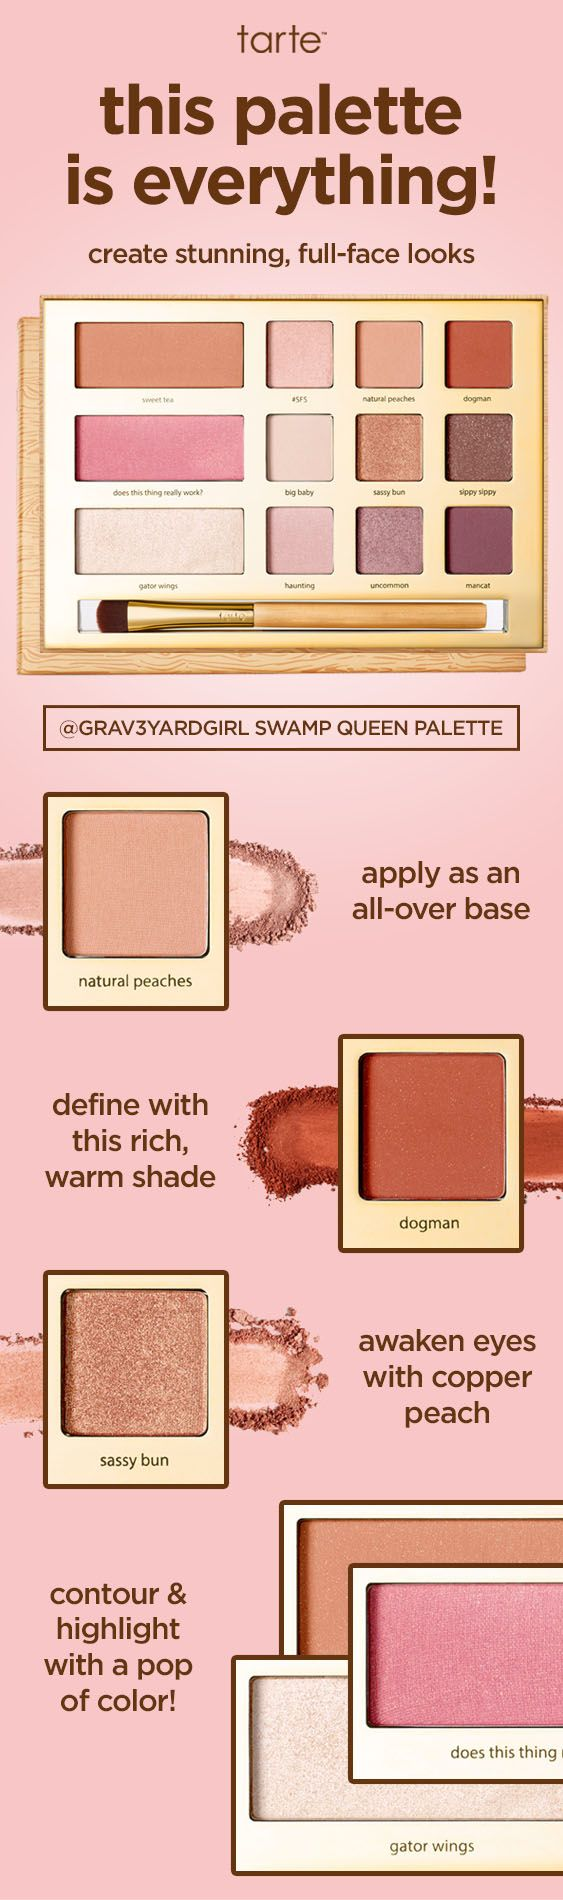 The amount of looks you can create with our limited-edition grav3yardgirl Swamp Queen palette? ENDLESS! Pick up yours now on tarte.com!  #tartecosmetics #swampfamily #rethinknatural #naturalartistry